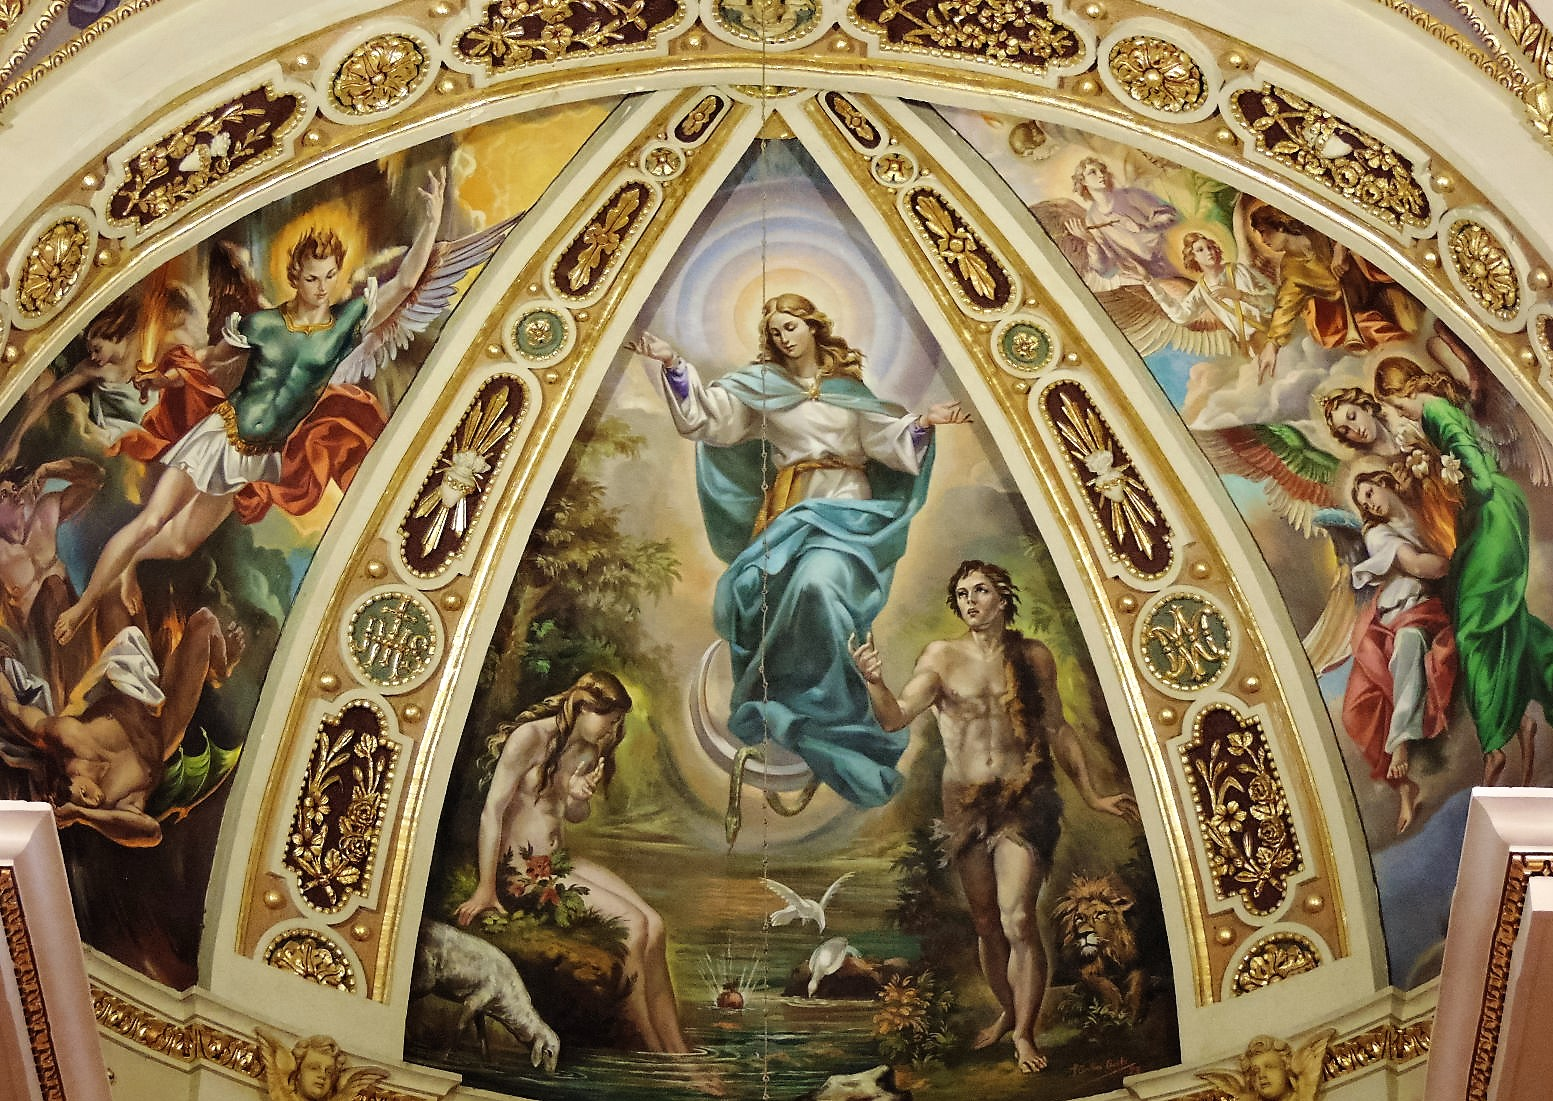 Dun Giljan's Blog: Church ceiling paintings